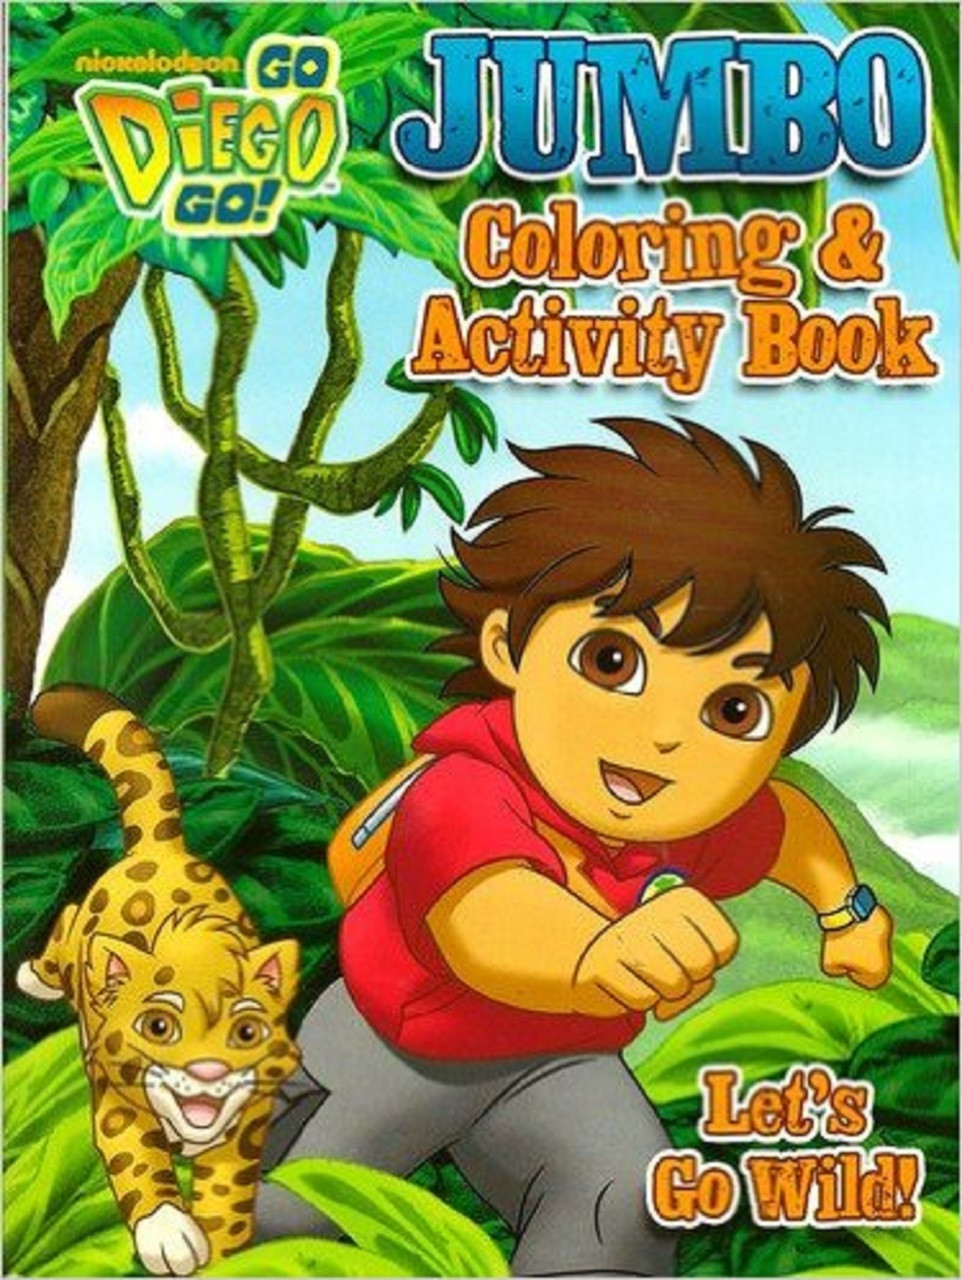 Diego Jumbo 96 pg. Coloring And Activity Book - Let's Go Wild!